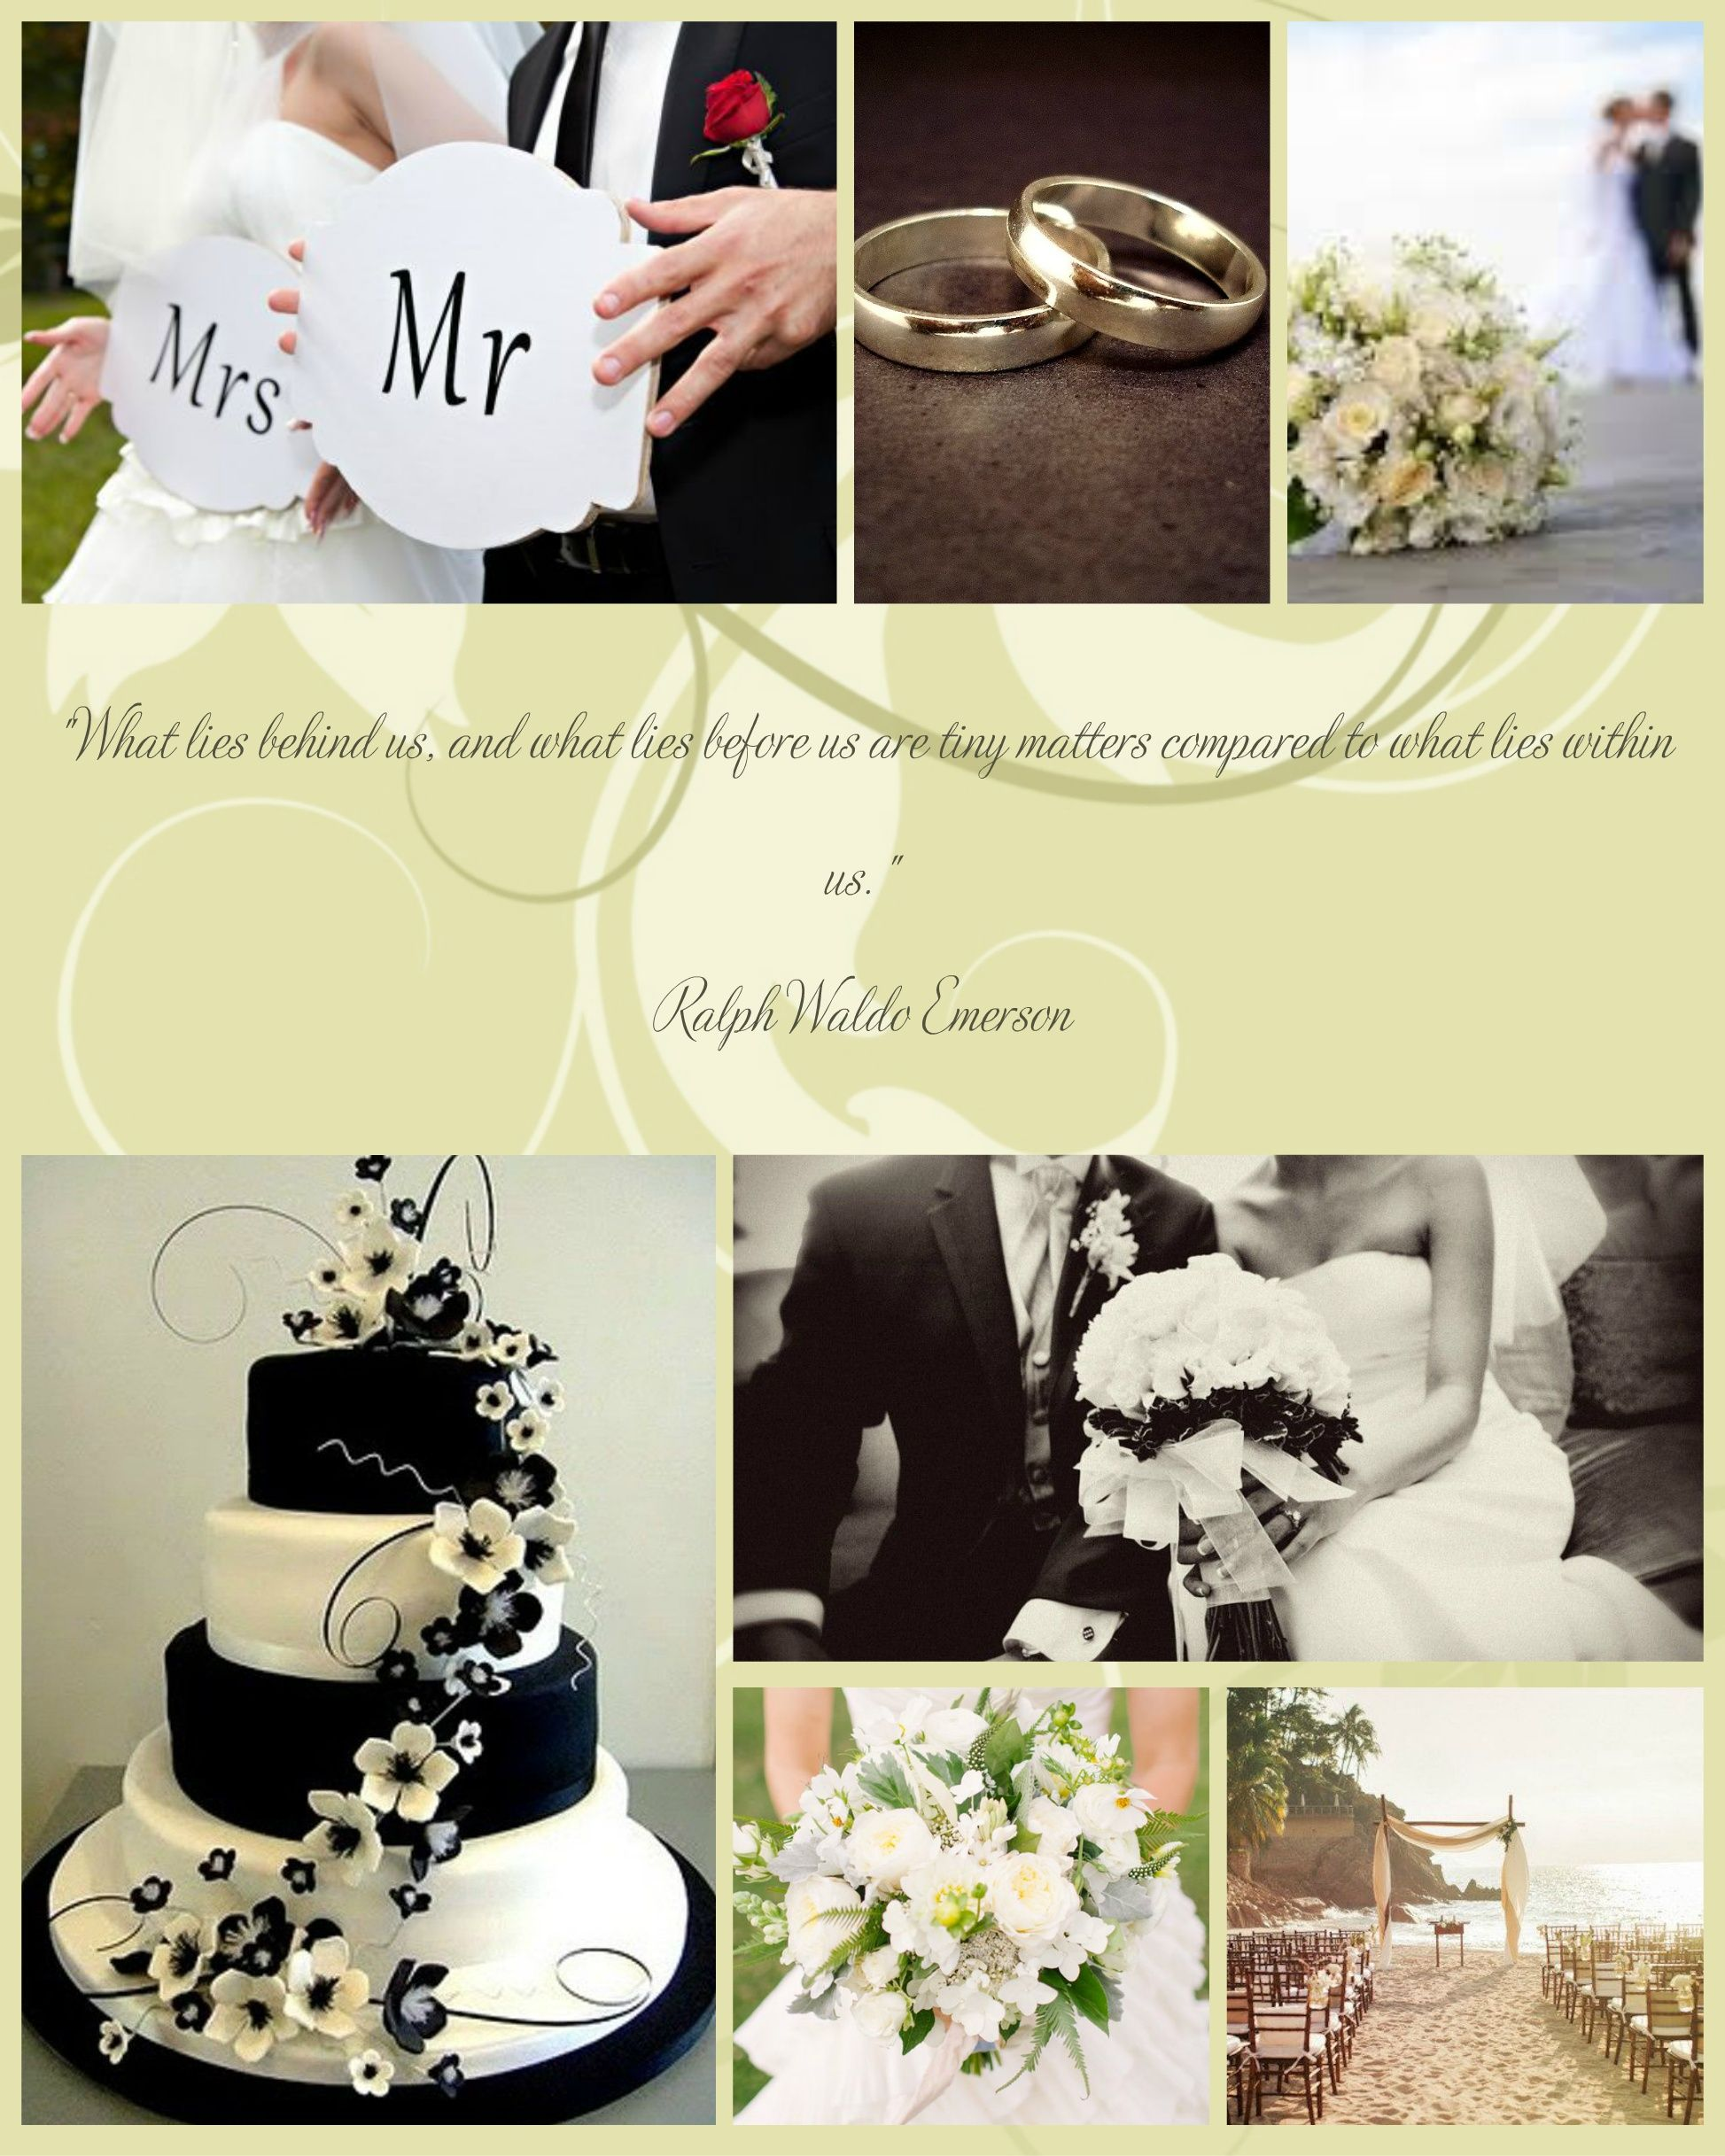 Sample Wedding Picture Collage. Others to choose from.